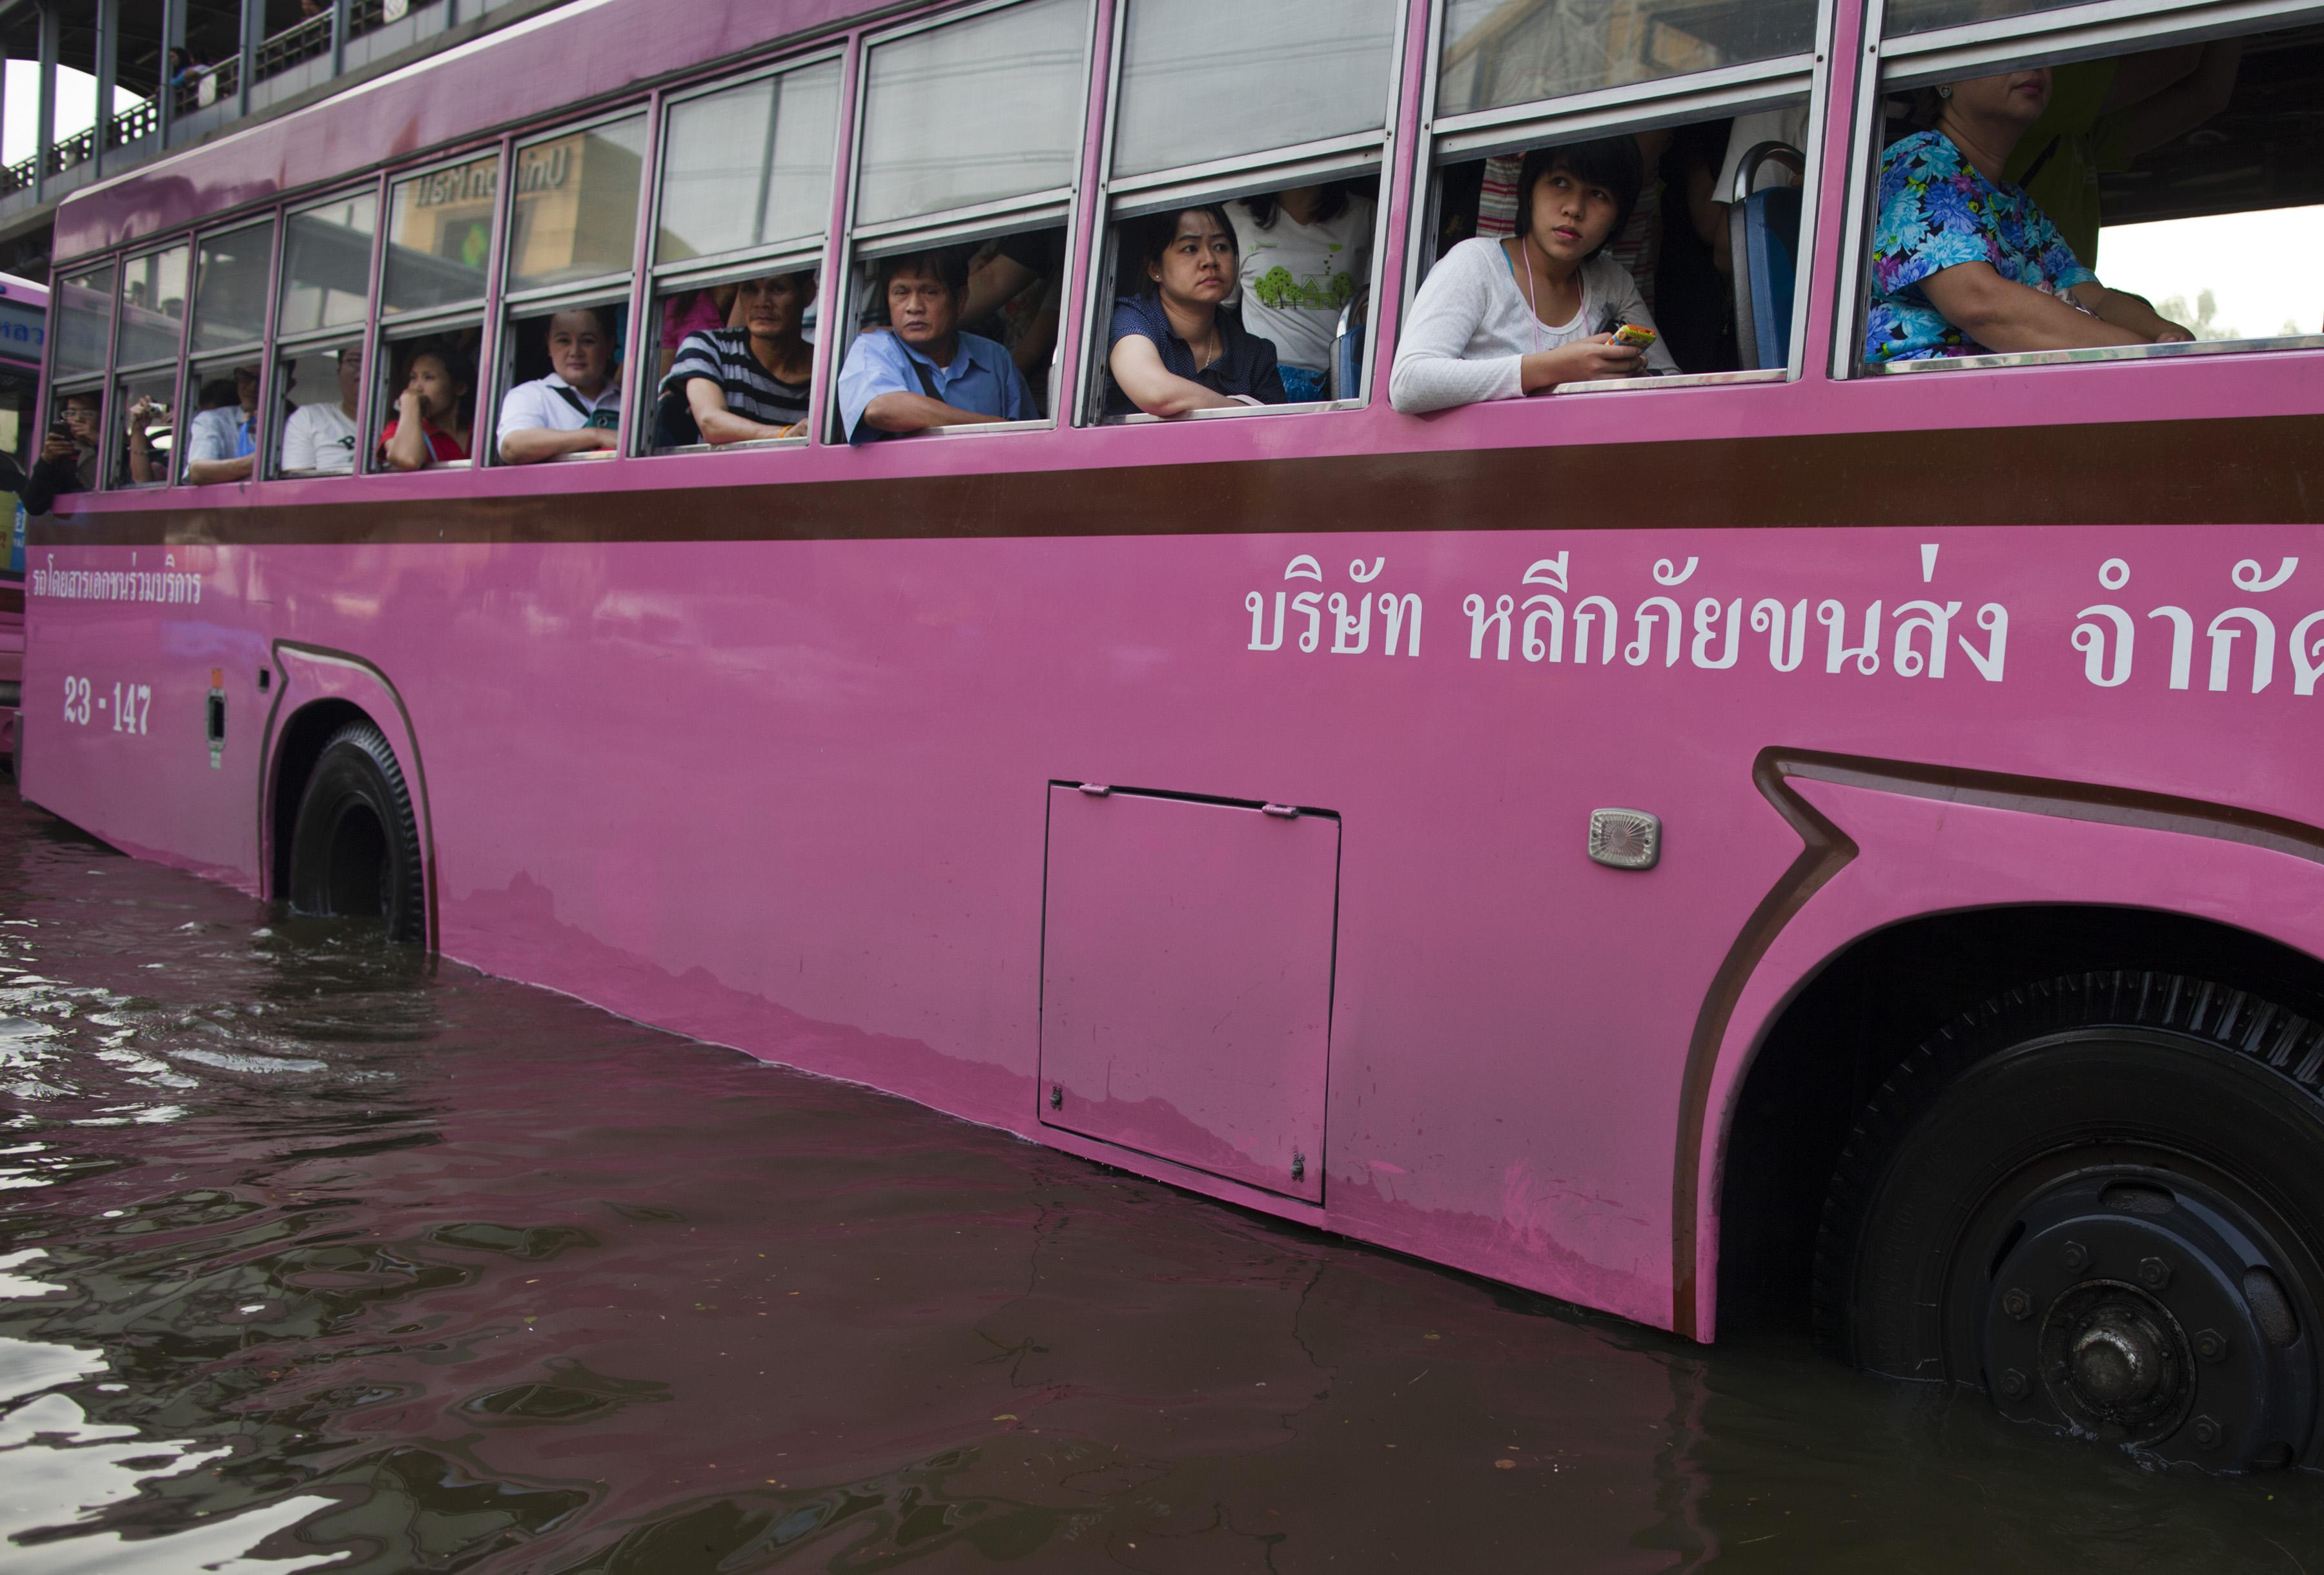 BANGKOK,THAILAND - NOVEMBER 4: A city bus take commuters home as flood waters take over the streets moving to the Lat Phrao area, a major shopping and business district November 4, 2011 in Bangkok, Thailand. Over seven major industrial parks in Bangkok and, thousands of factories have been closed in the central Thai province of Ayutthaya and Nonthaburi with millions of tons of rice damaged. Thailand is experiencing the worst flooding in over 50 years which has affected more than nine million people. Over 400 people have died in flood-related incidents since late July according to the Department of Disaster Prevention and Mitigation. (Photo by Paula Bronstein /Getty Images)